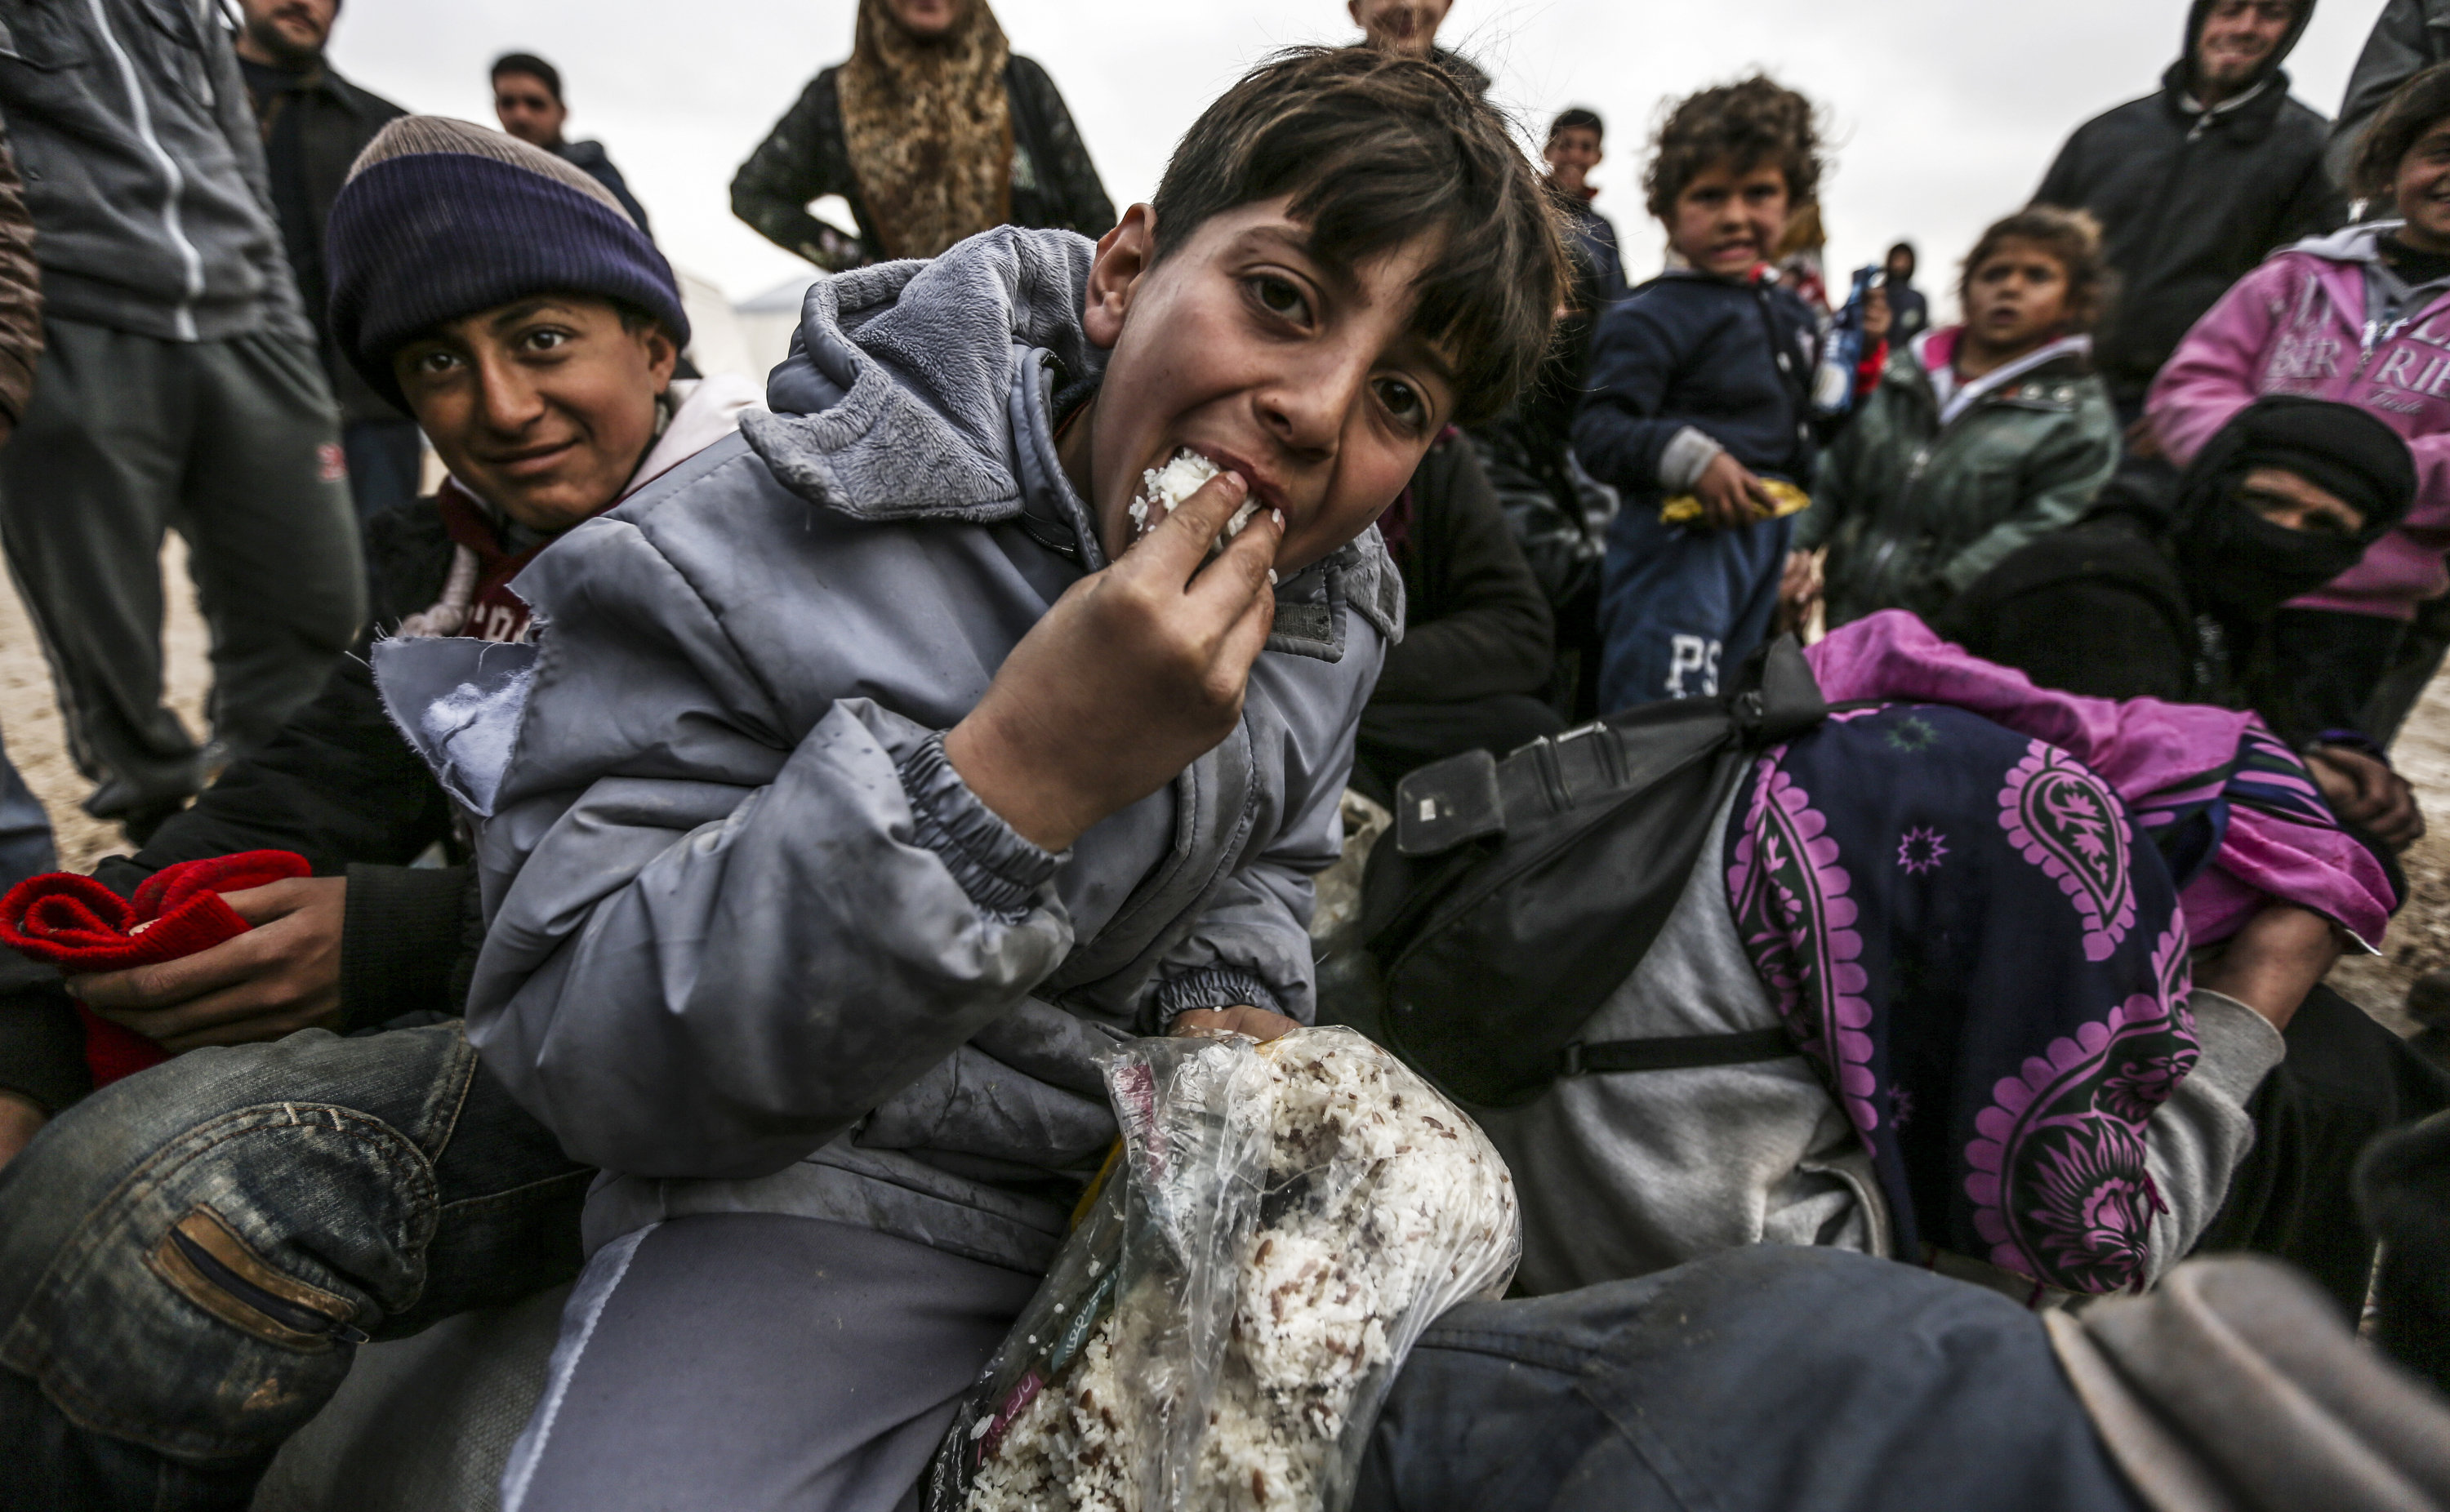 Syrian refugees are pictured in a camp as Syrians fleeing the northern embattled city of Aleppo wait on February 6, 2016 in Bab al-Salama, near the city of Azaz, northern Syria, near the Turkish border crossing.